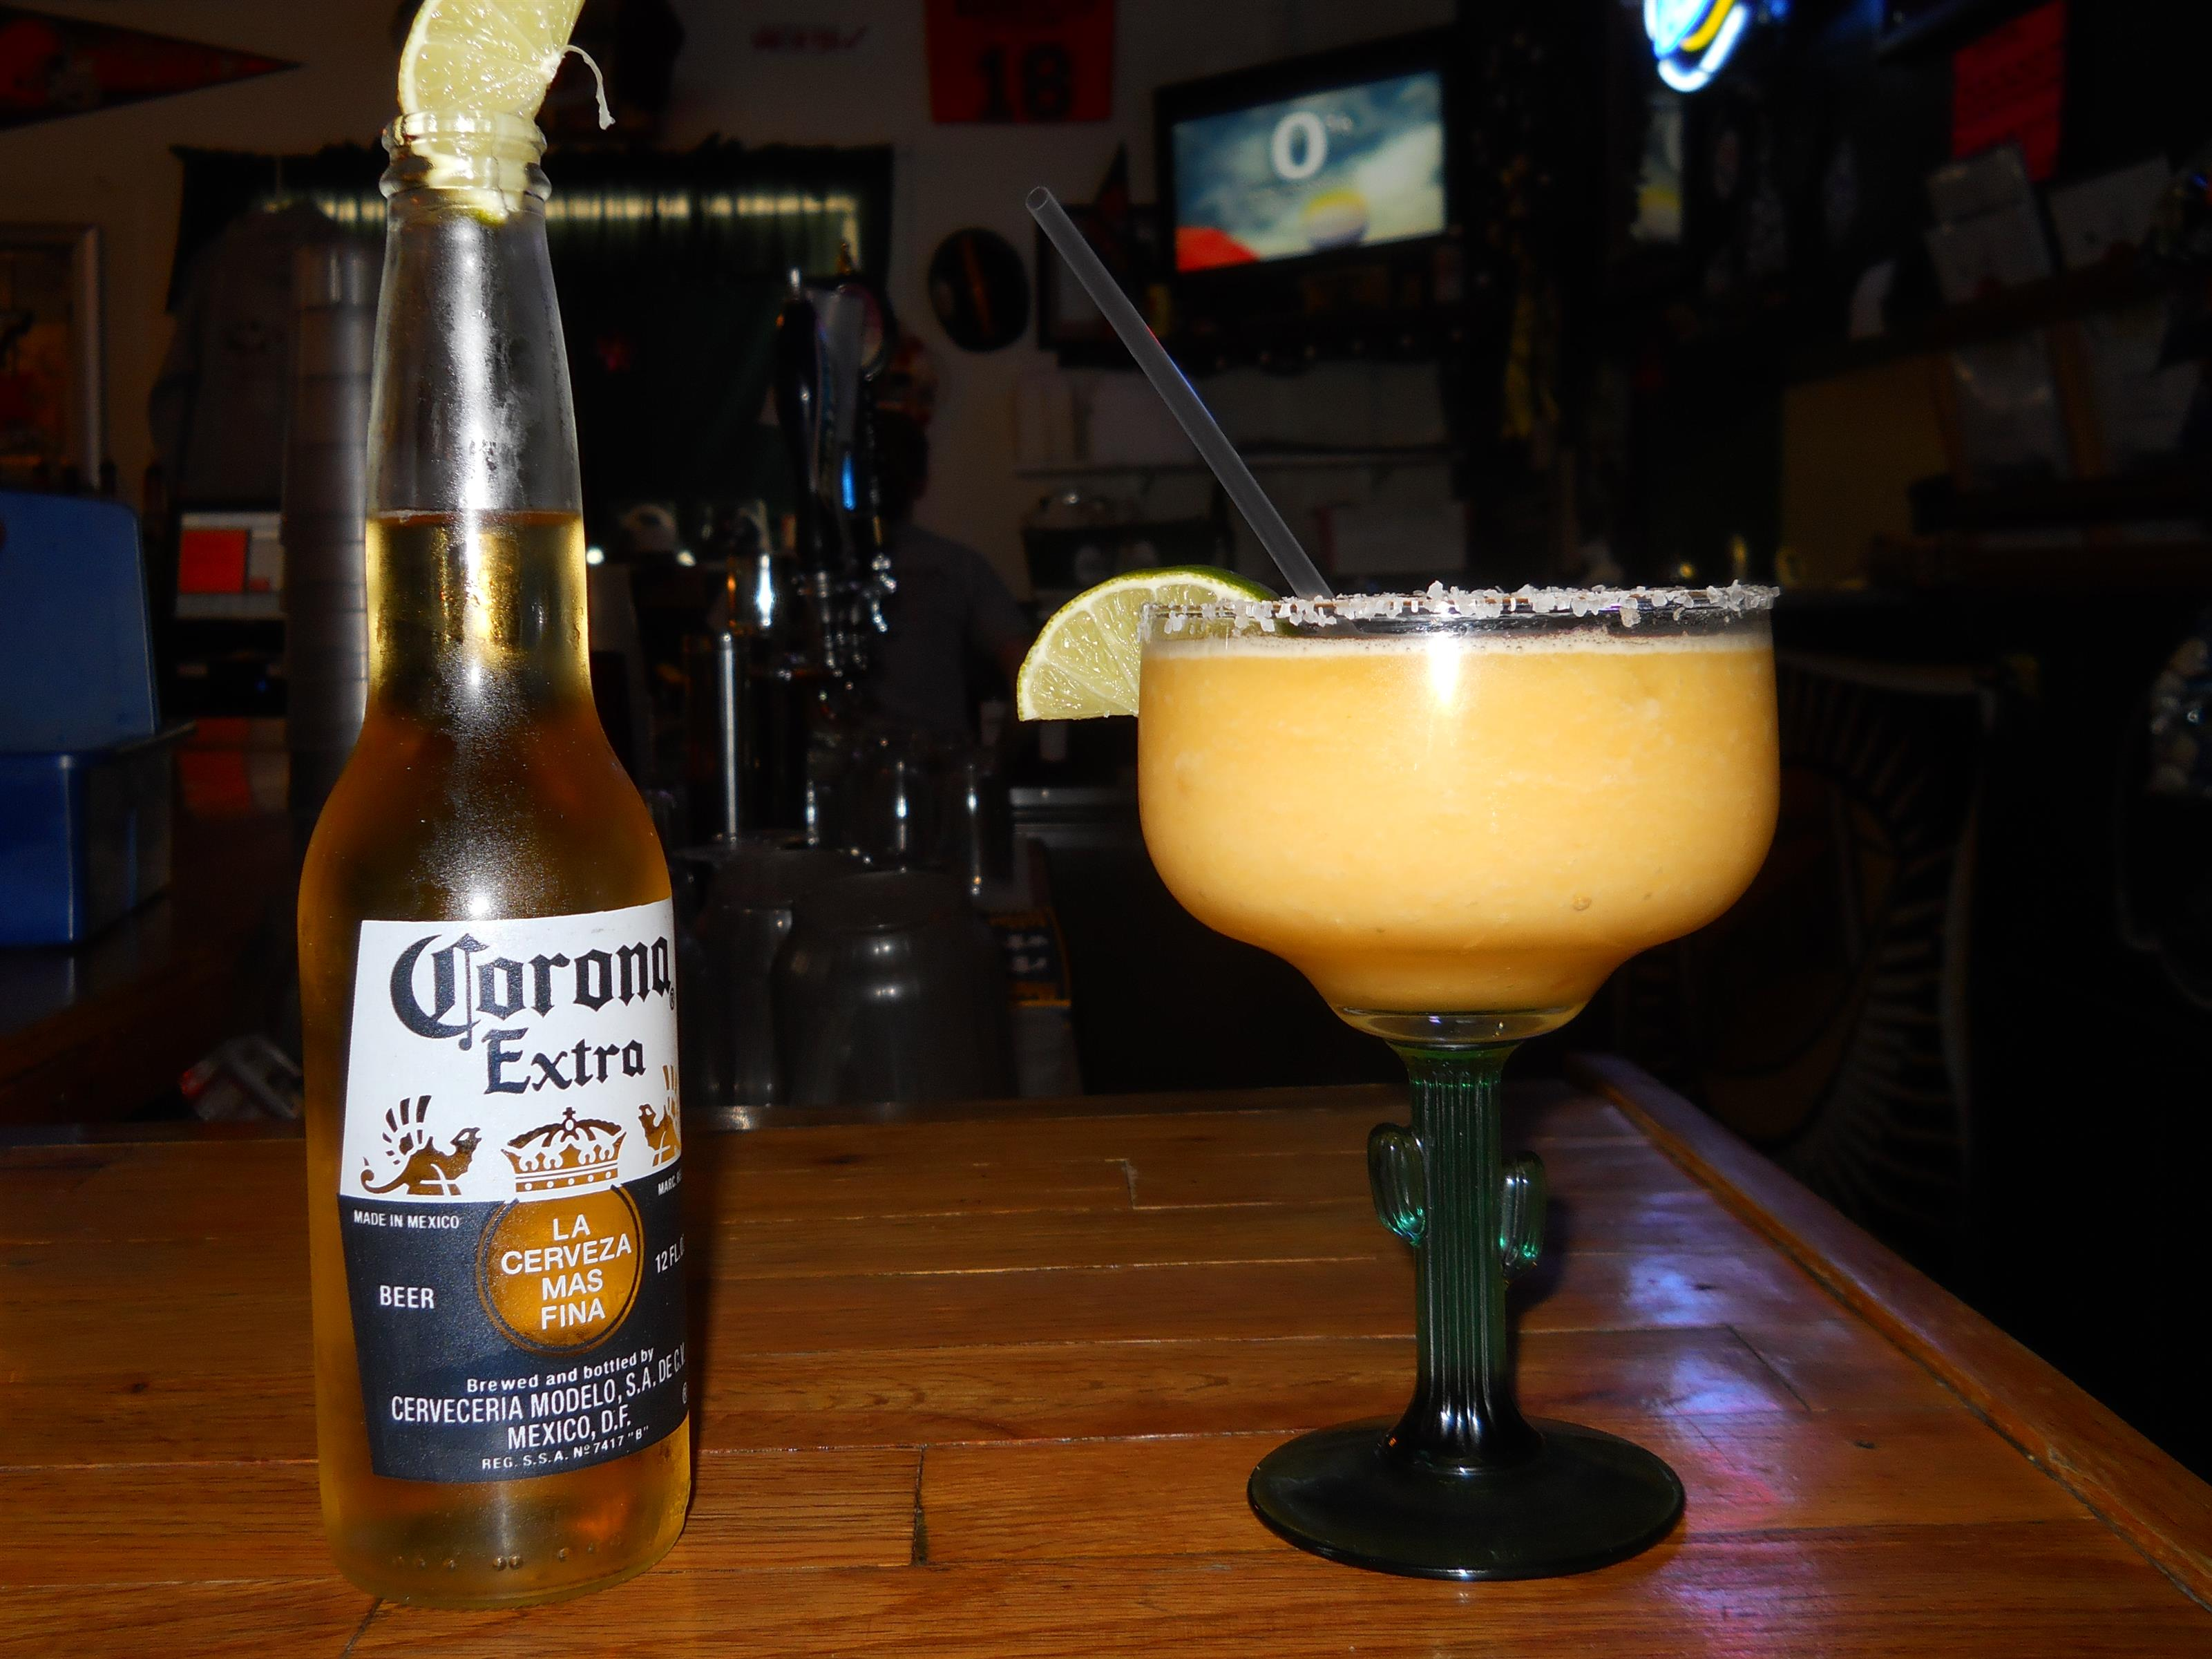 mixed drink with a corona bottle on the bar counter